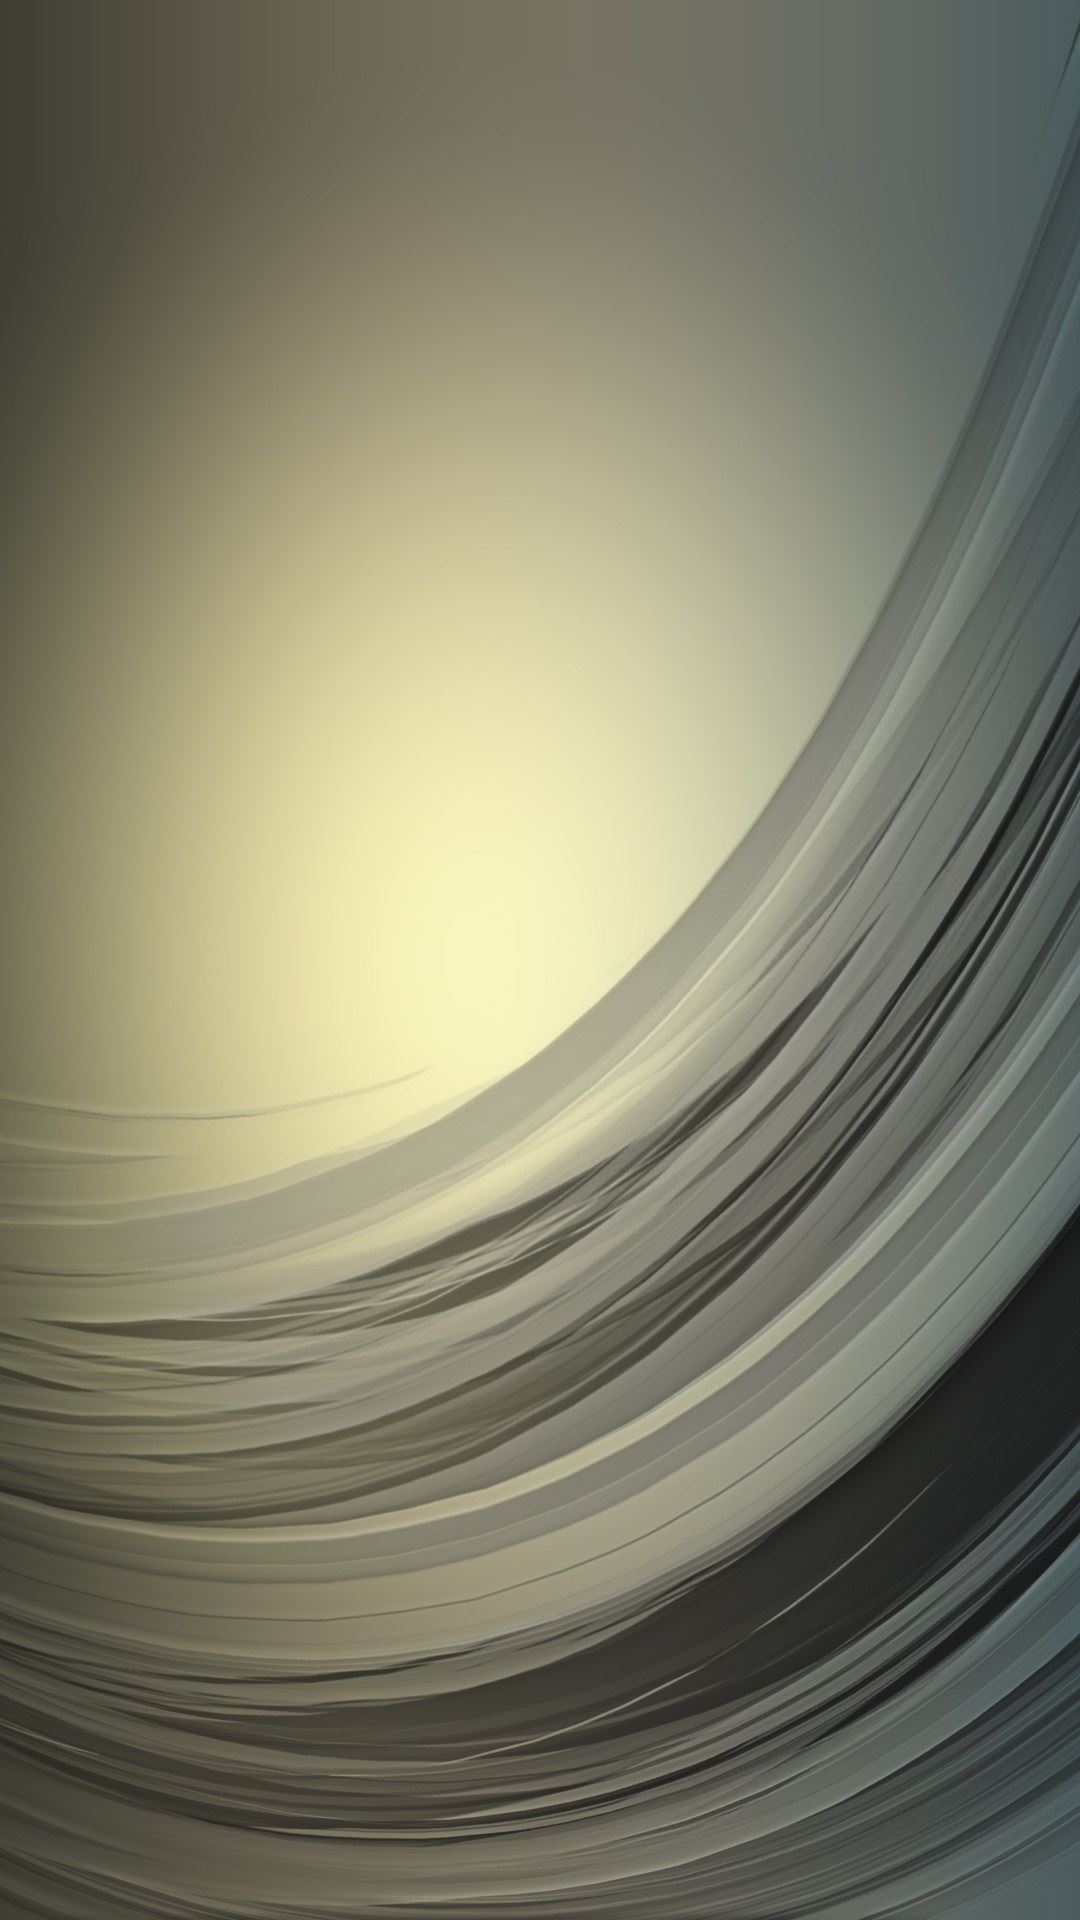 3d Wallpaper Like Iphone 60 Clever Abstract Iphone Wallpapers For Art Lovers